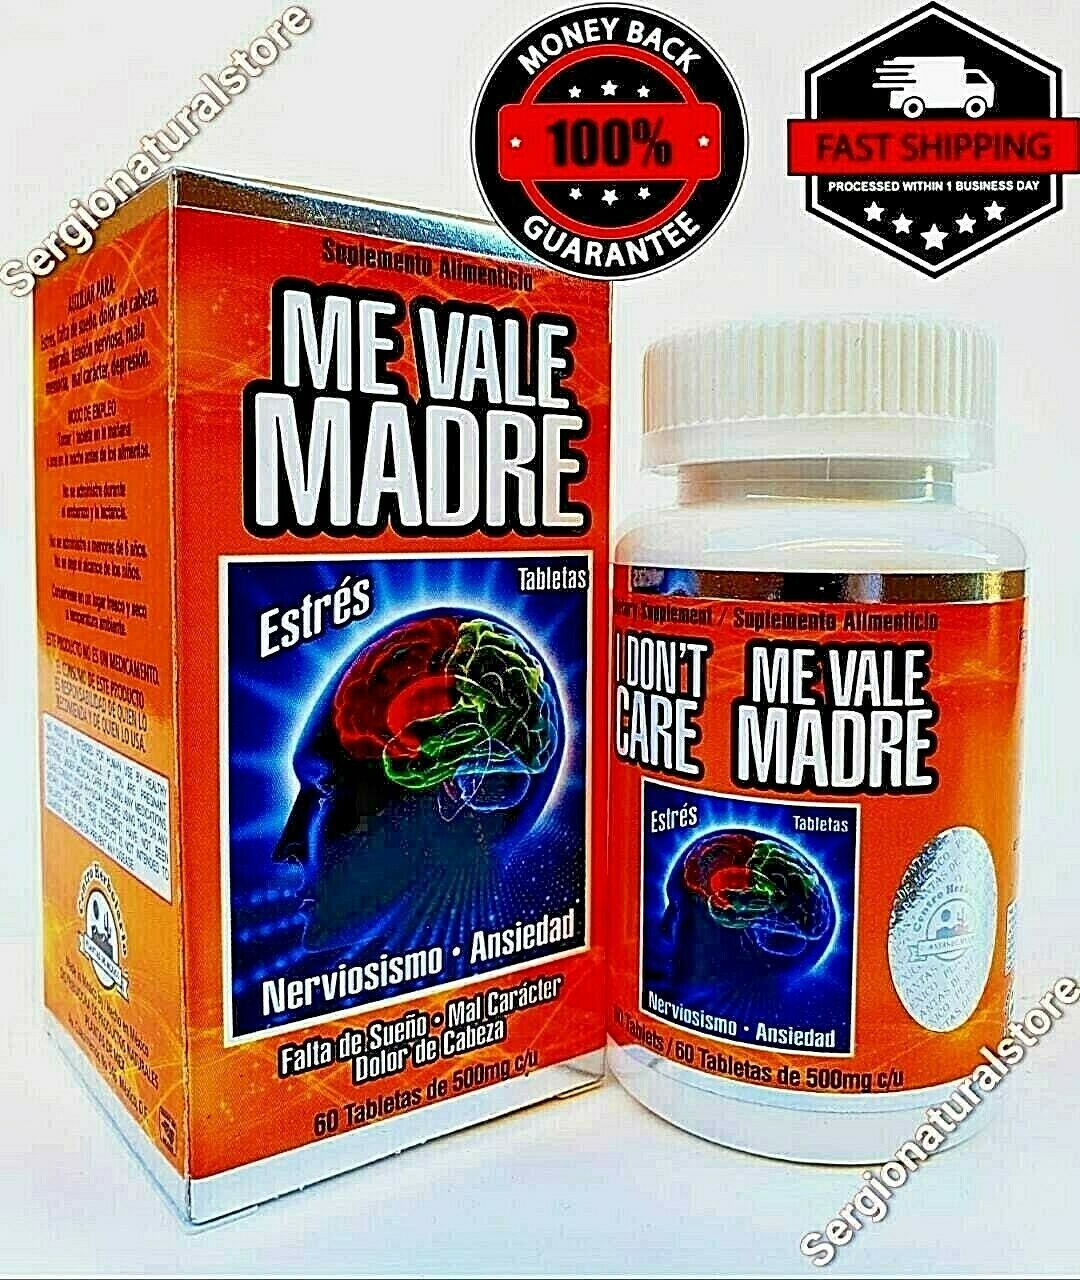 ME VALE MADRE 60 Tablets 500 mg each Support Estres Depresion Ansiedad